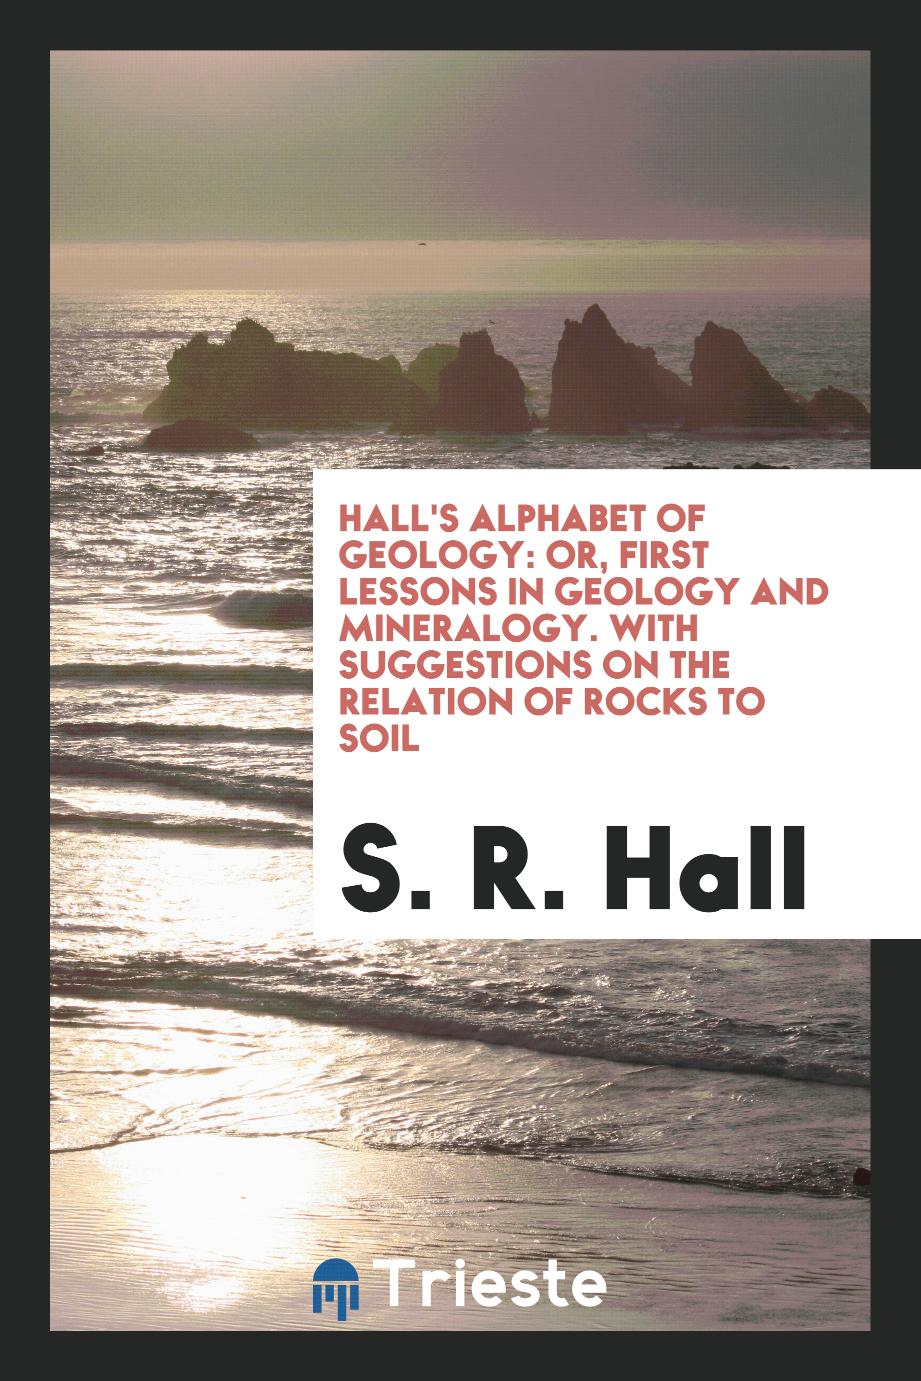 Hall's Alphabet of Geology: Or, First Lessons in Geology and Mineralogy. With Suggestions on the Relation of Rocks to Soil